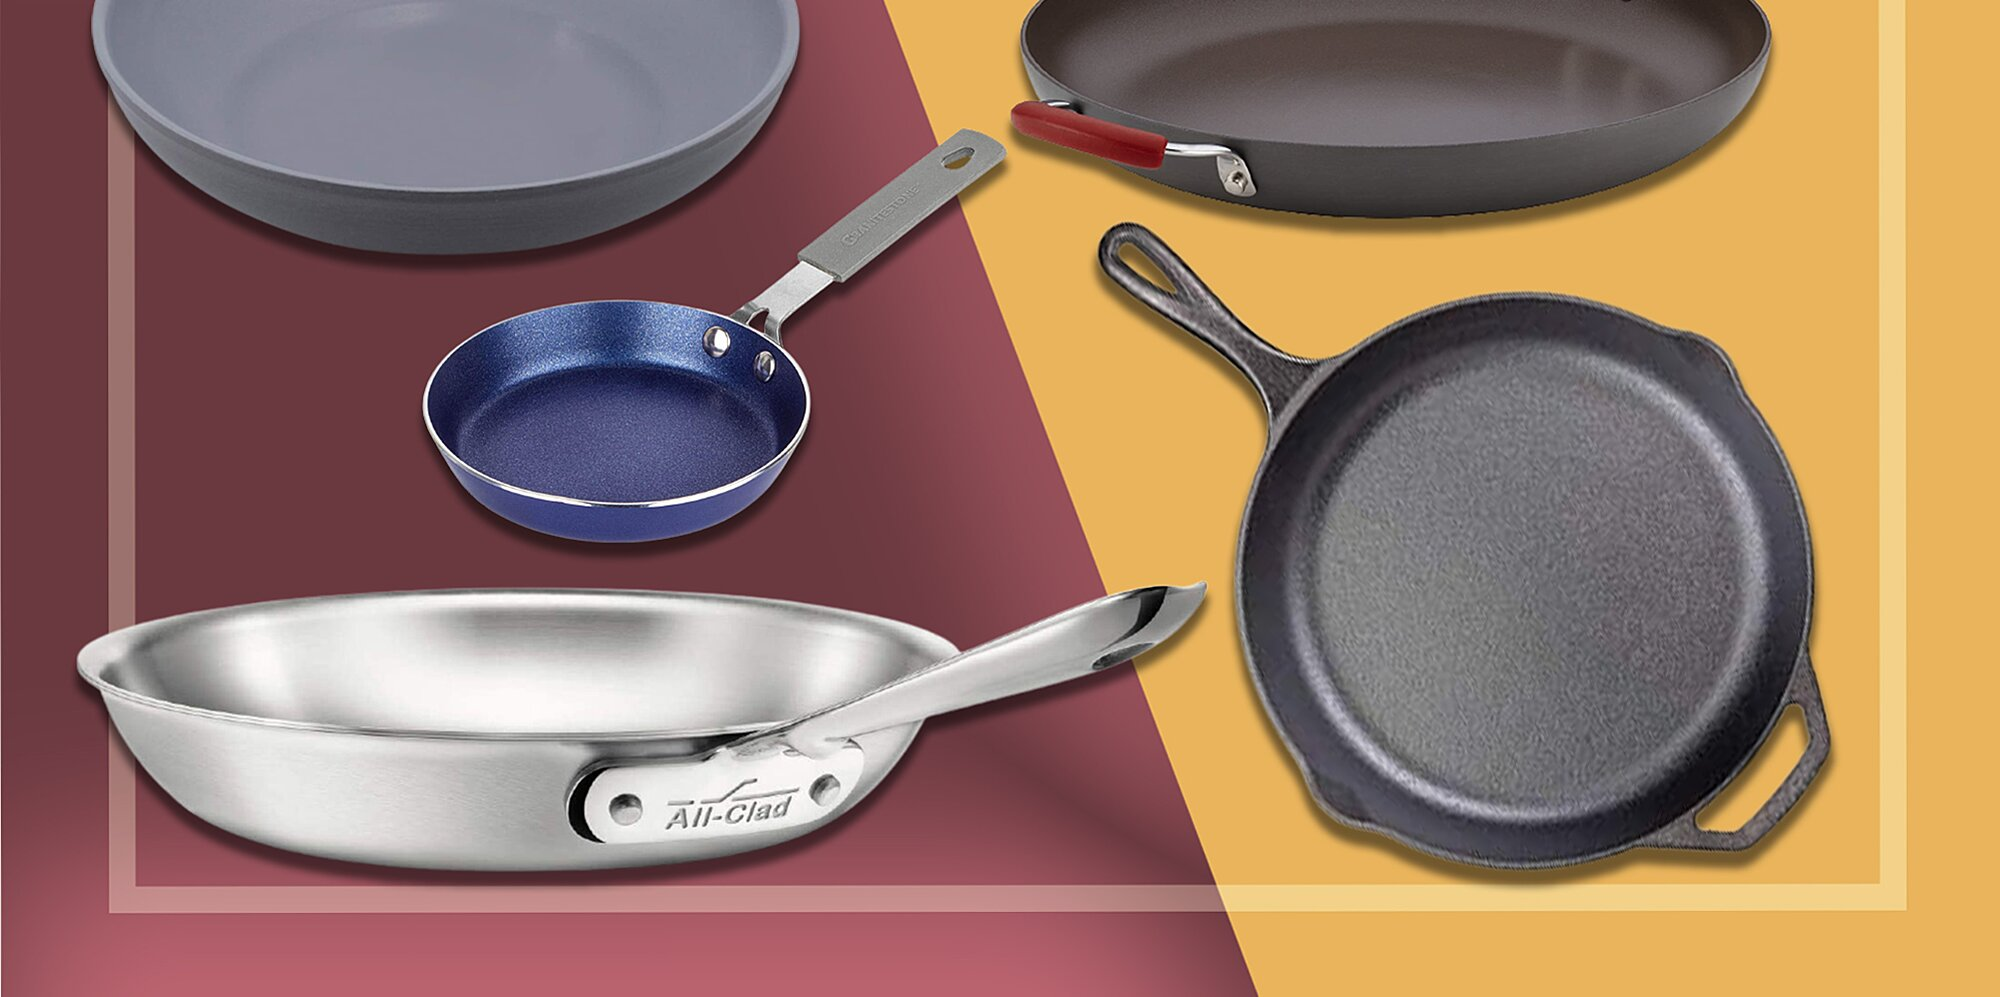 The Best Egg Pans for Every Type of Breakfast, According to Home Cooks